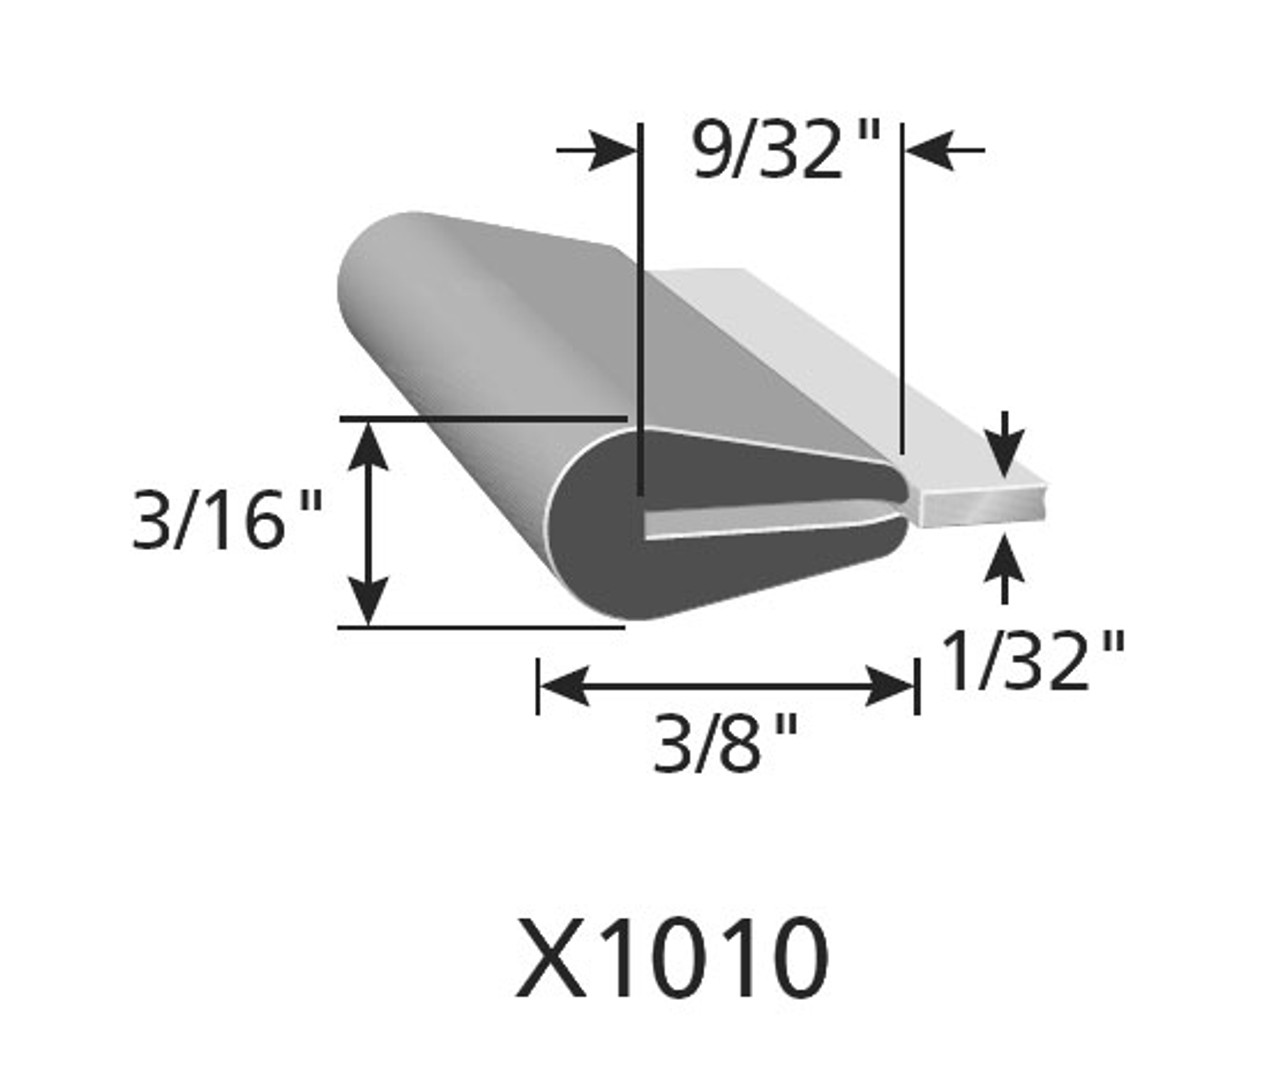 """3/8"""" Tall / Fits up to a 1/32"""" Edge Thickness with a Leg Length of 9/32"""""""